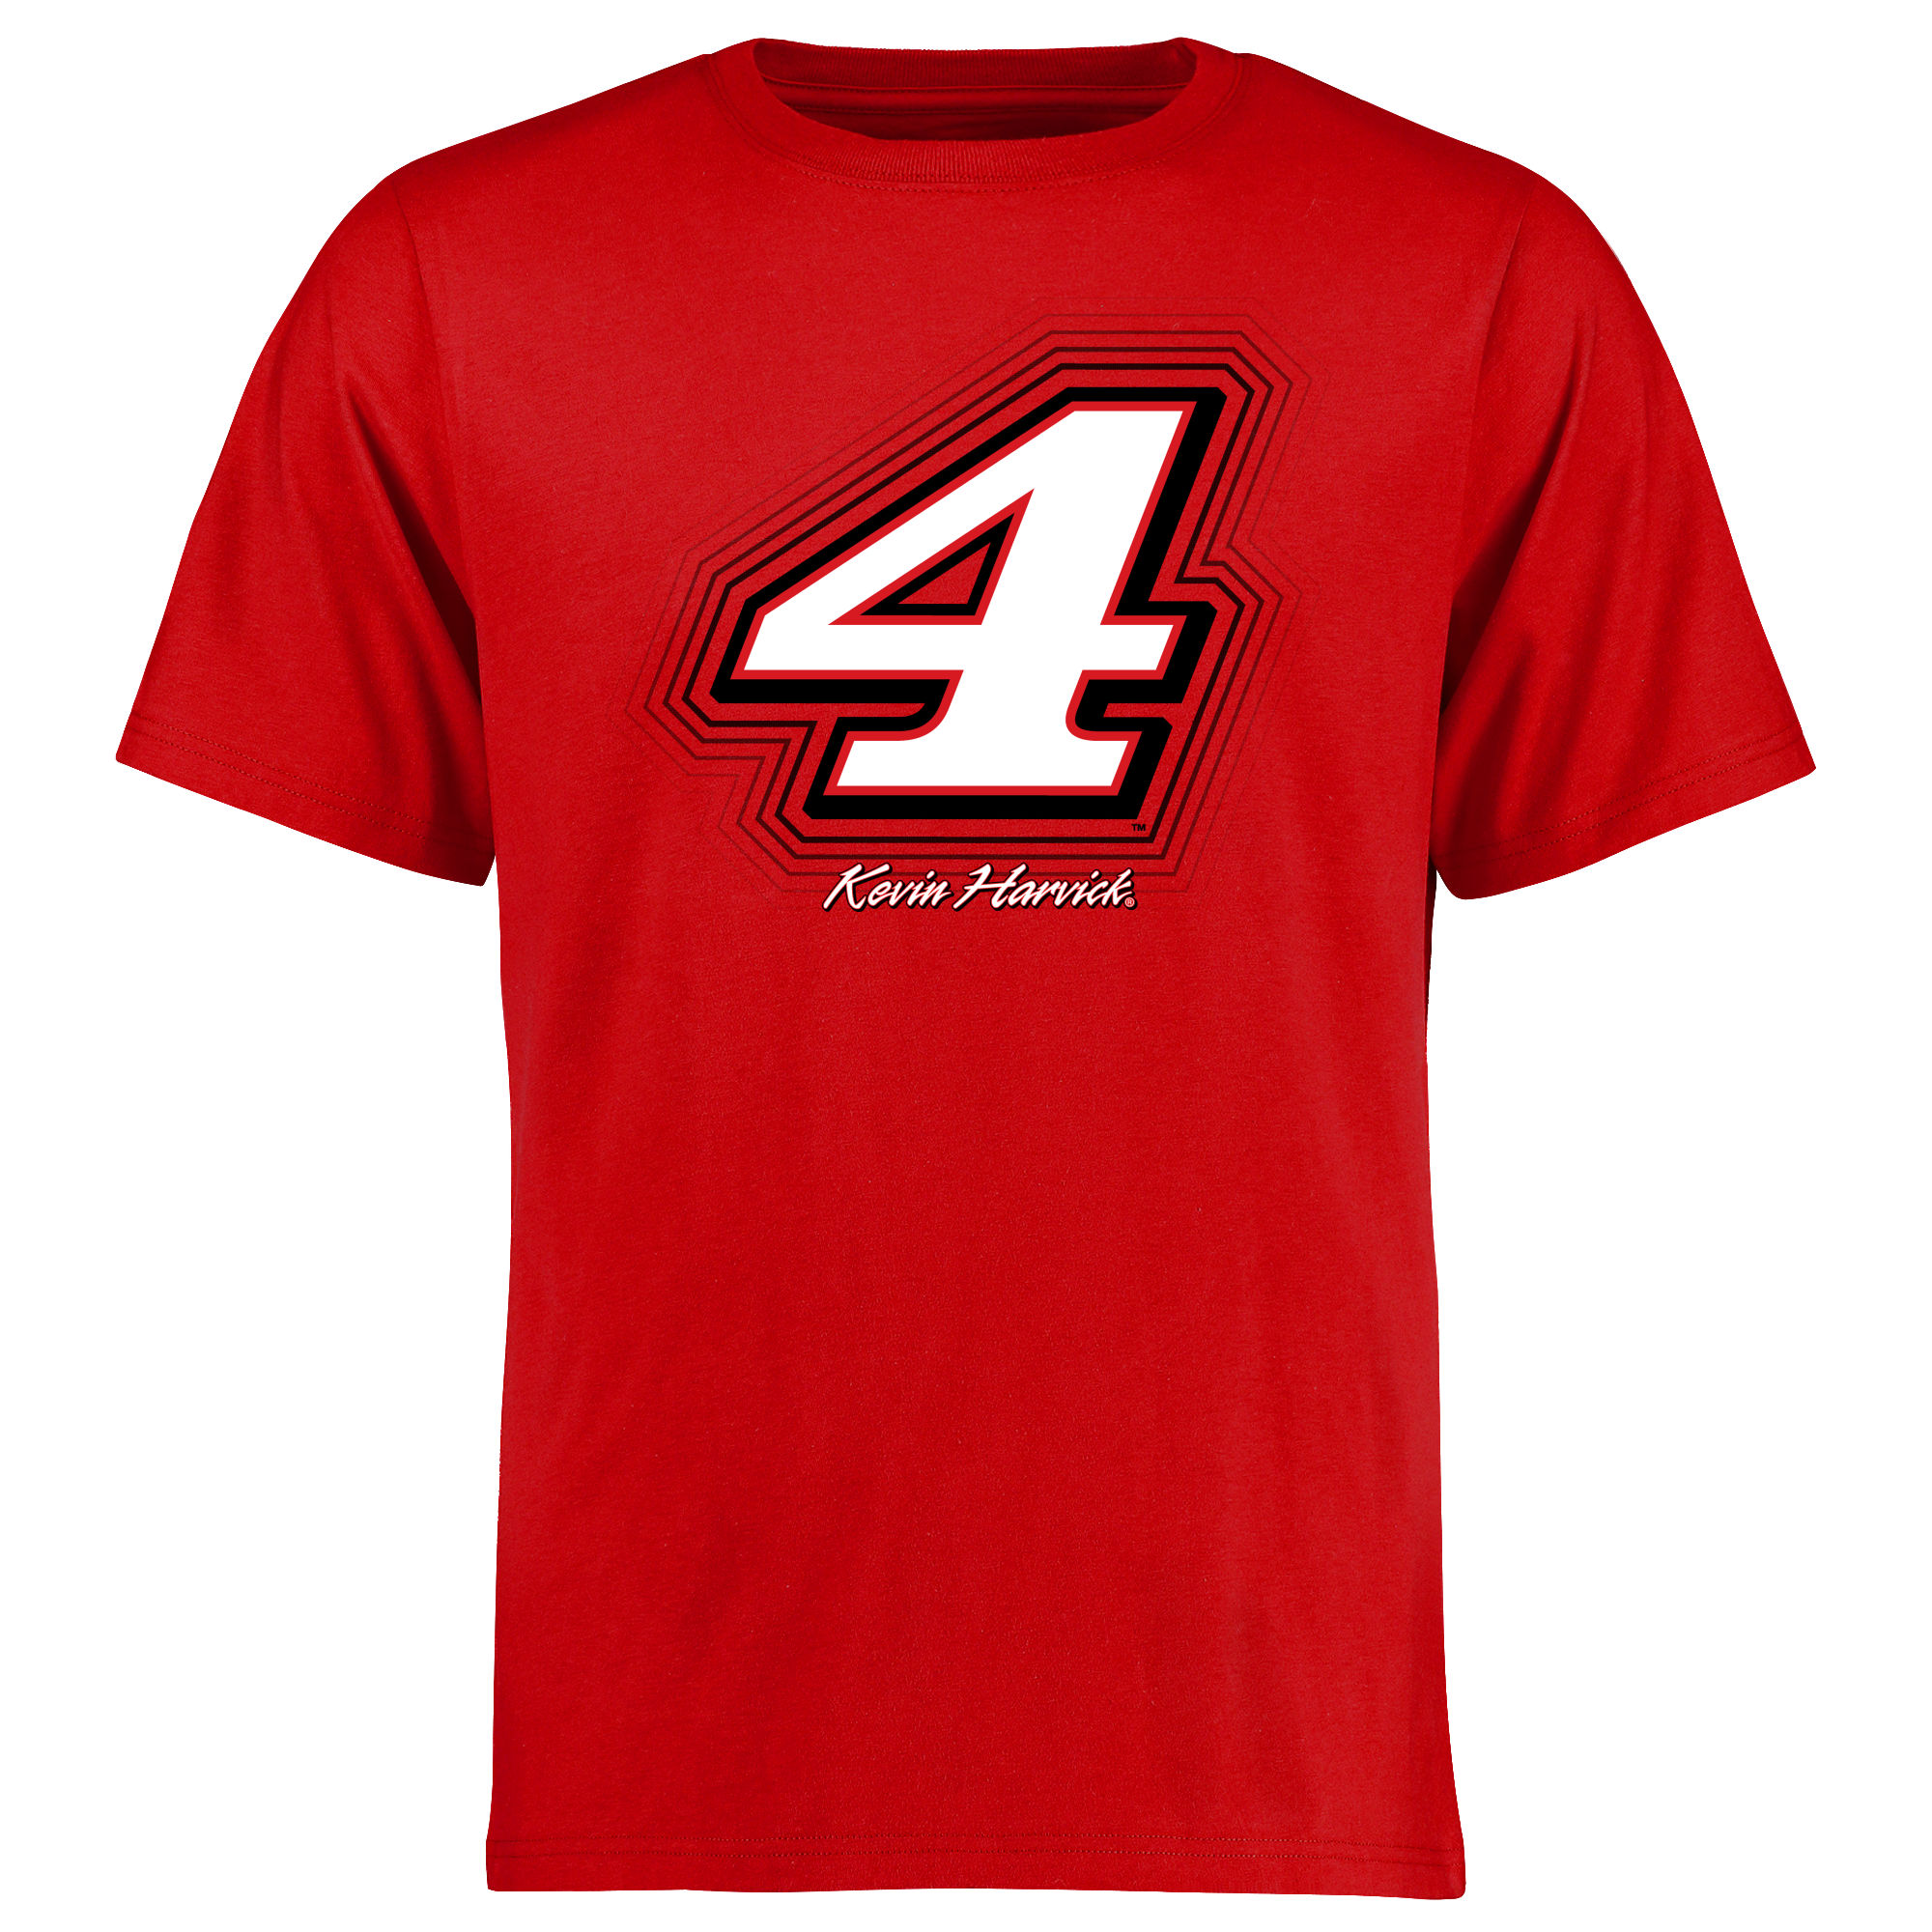 Kevin Harvick Reverb T-Shirt - Red